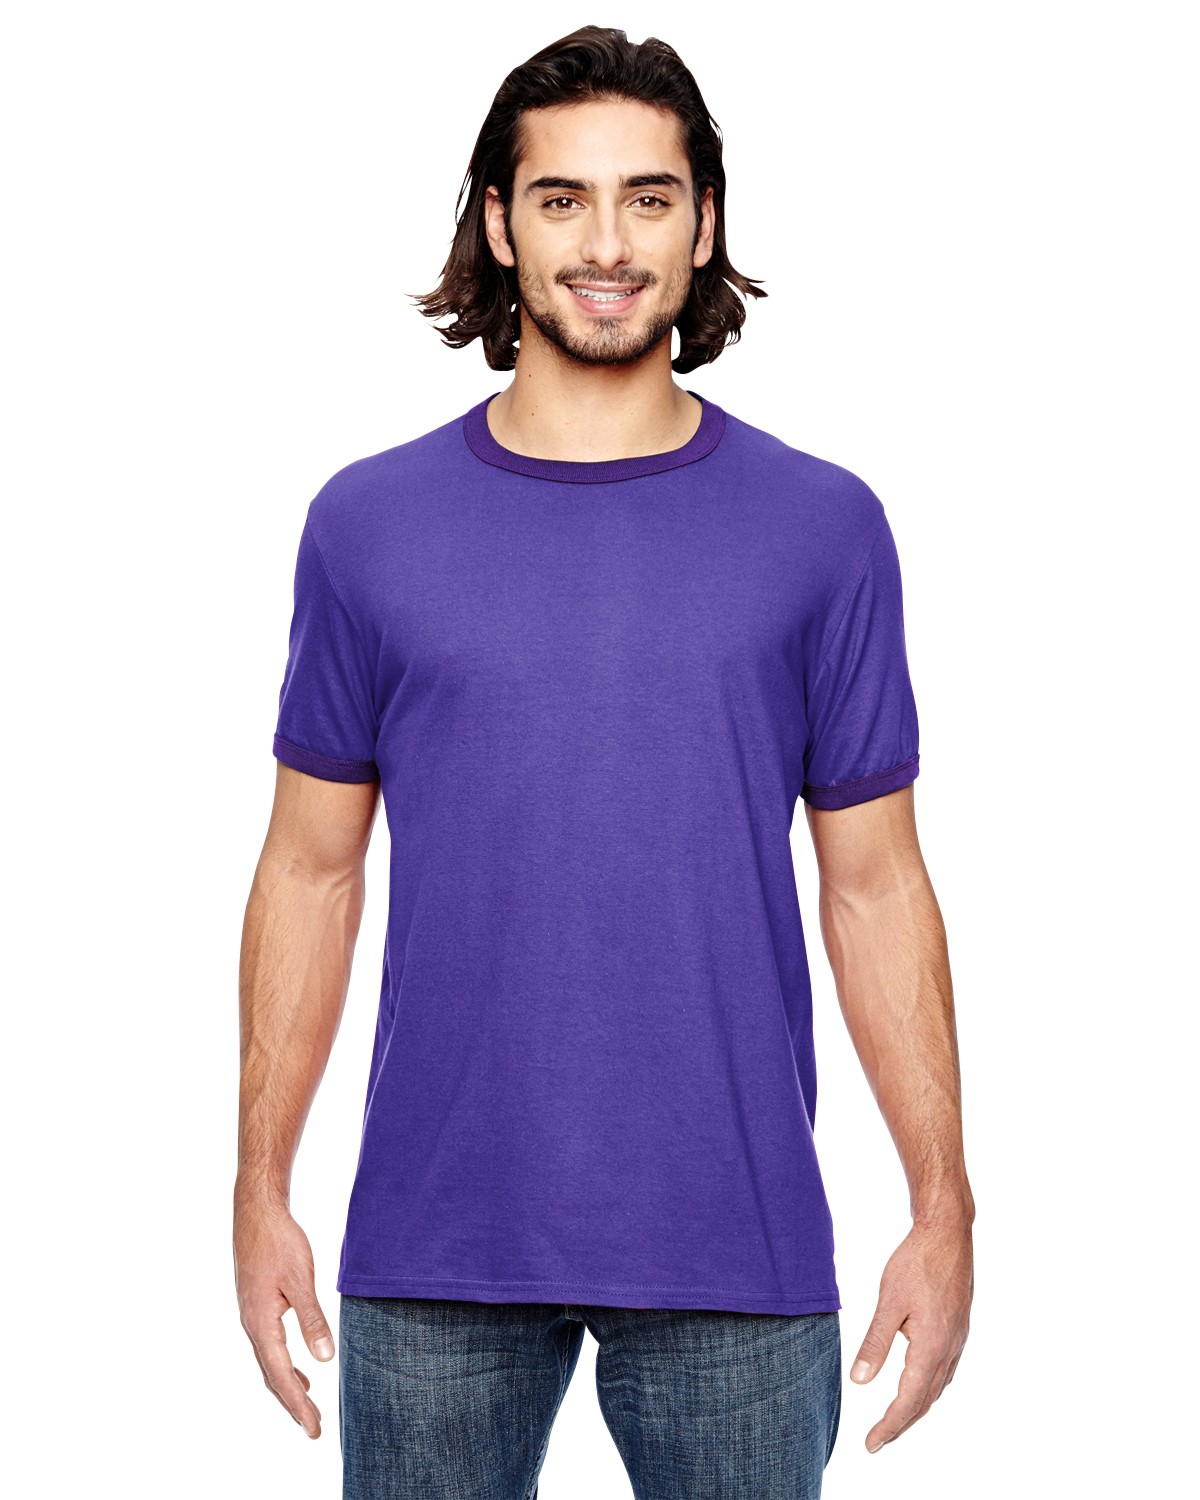 988AN Anvil H PURPLE/TR PUR